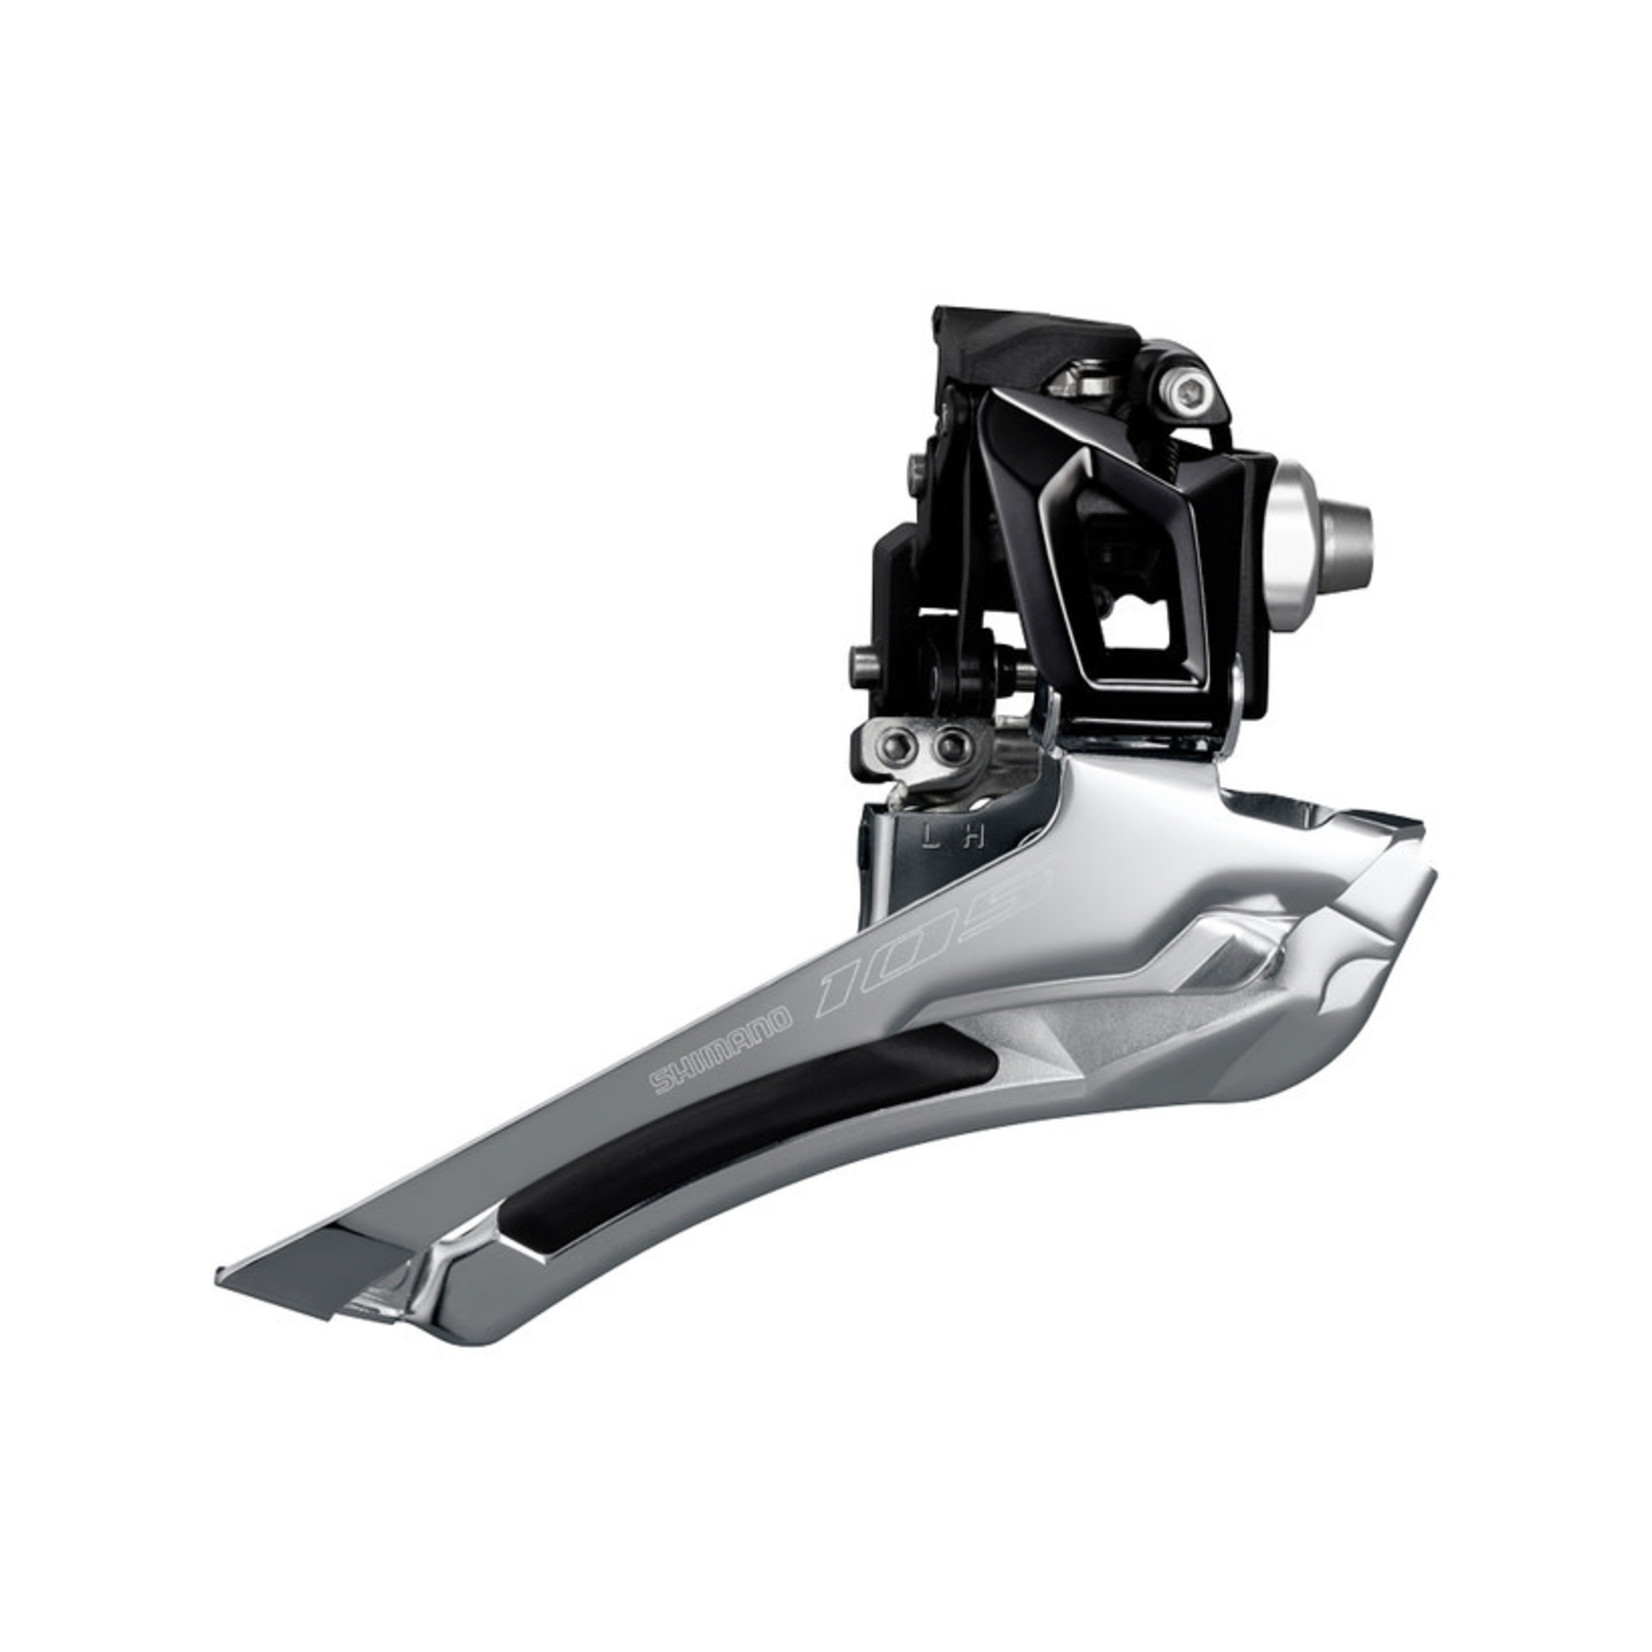 Shimano FRONT DERAILLEUR, FD-R7000-L, 105, FOR REAR 11-SPEED, DOWN-SWING, 34.9MM BAND, CS-ANGLE:61-66, FOR TOP GEAR:46-53T, BLACK